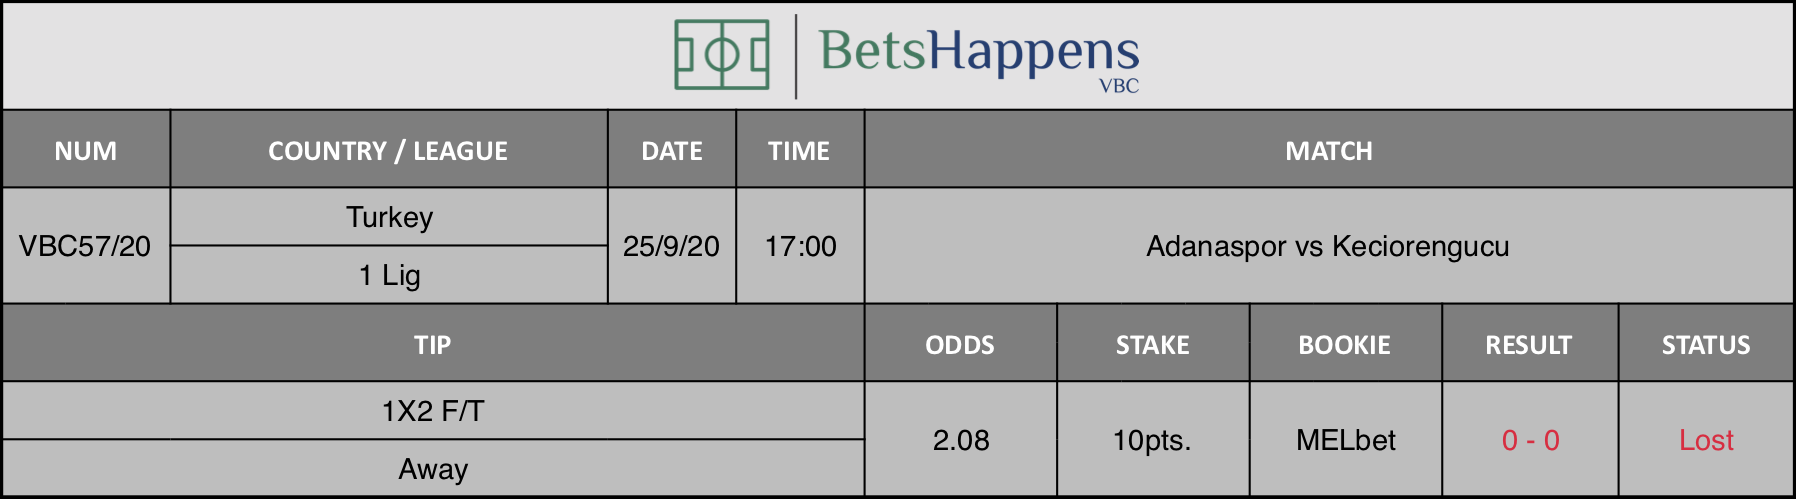 Results of our tip for the Adanaspor vs Keciorengucu match in which 1X2 F / T Away is recommended.